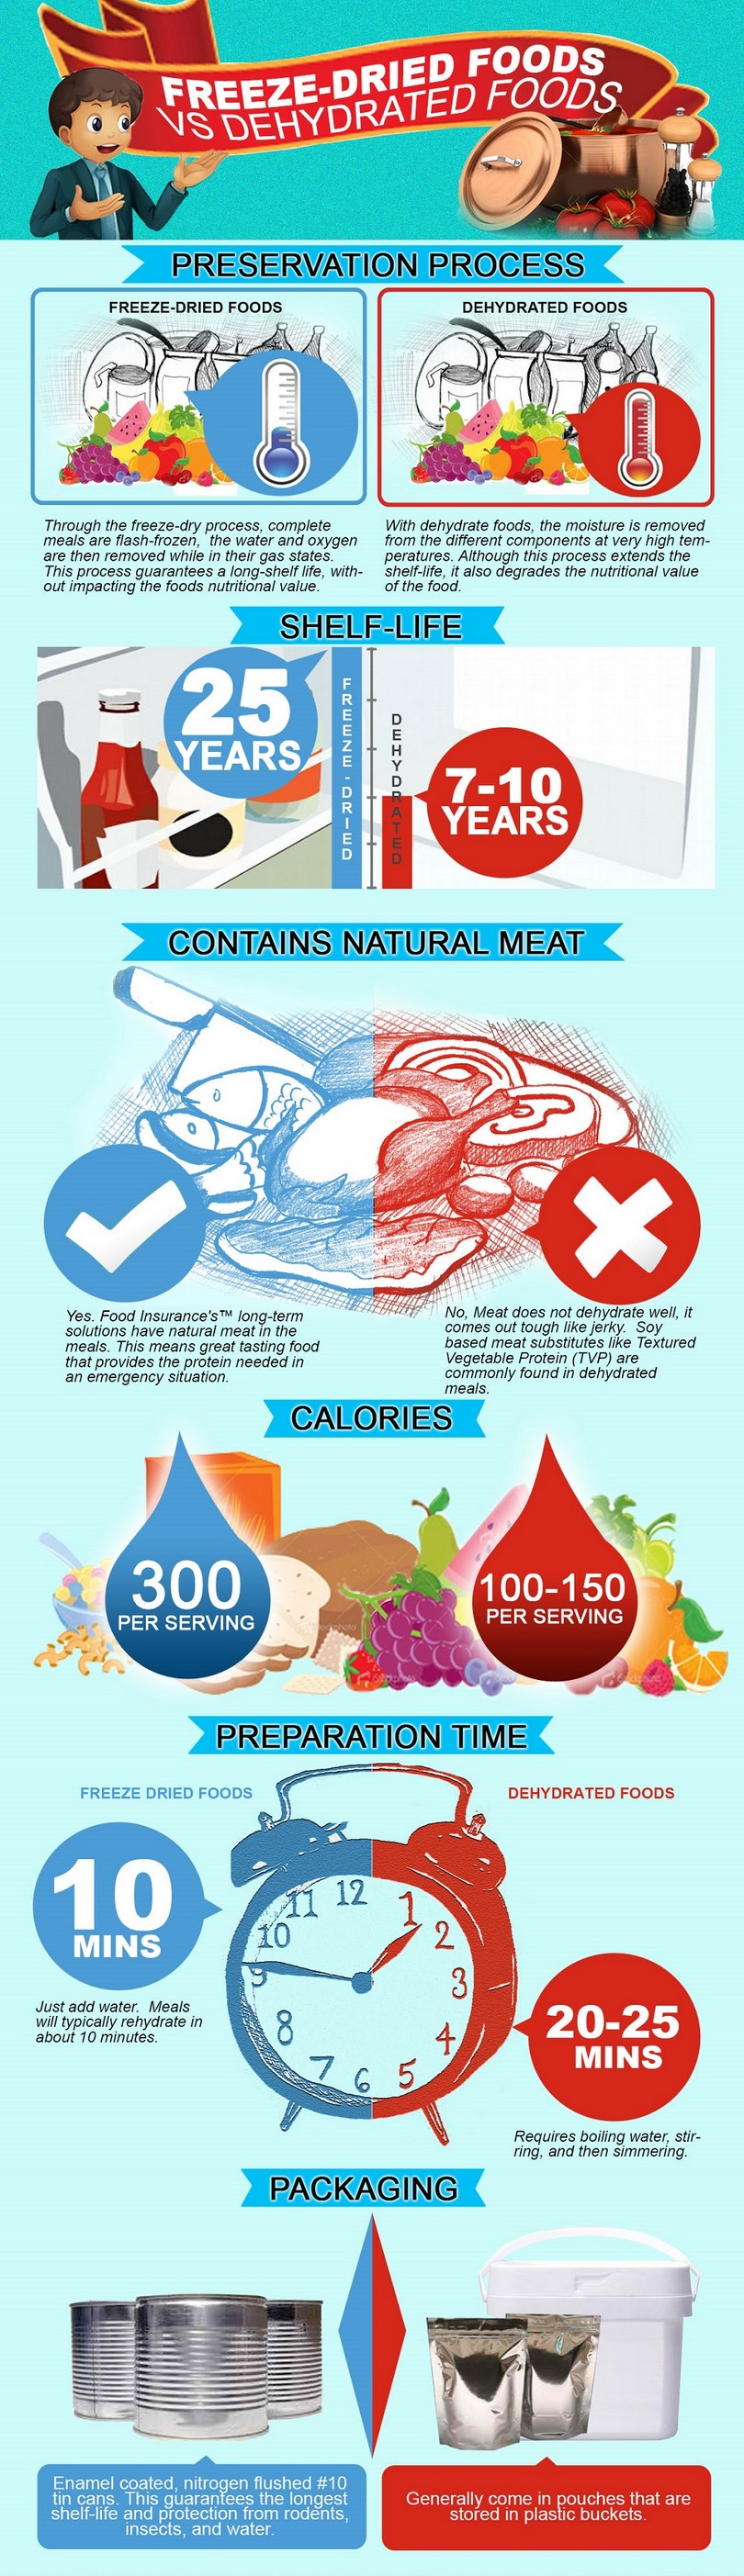 Freeze dried food vs dehydrated food-Infographic